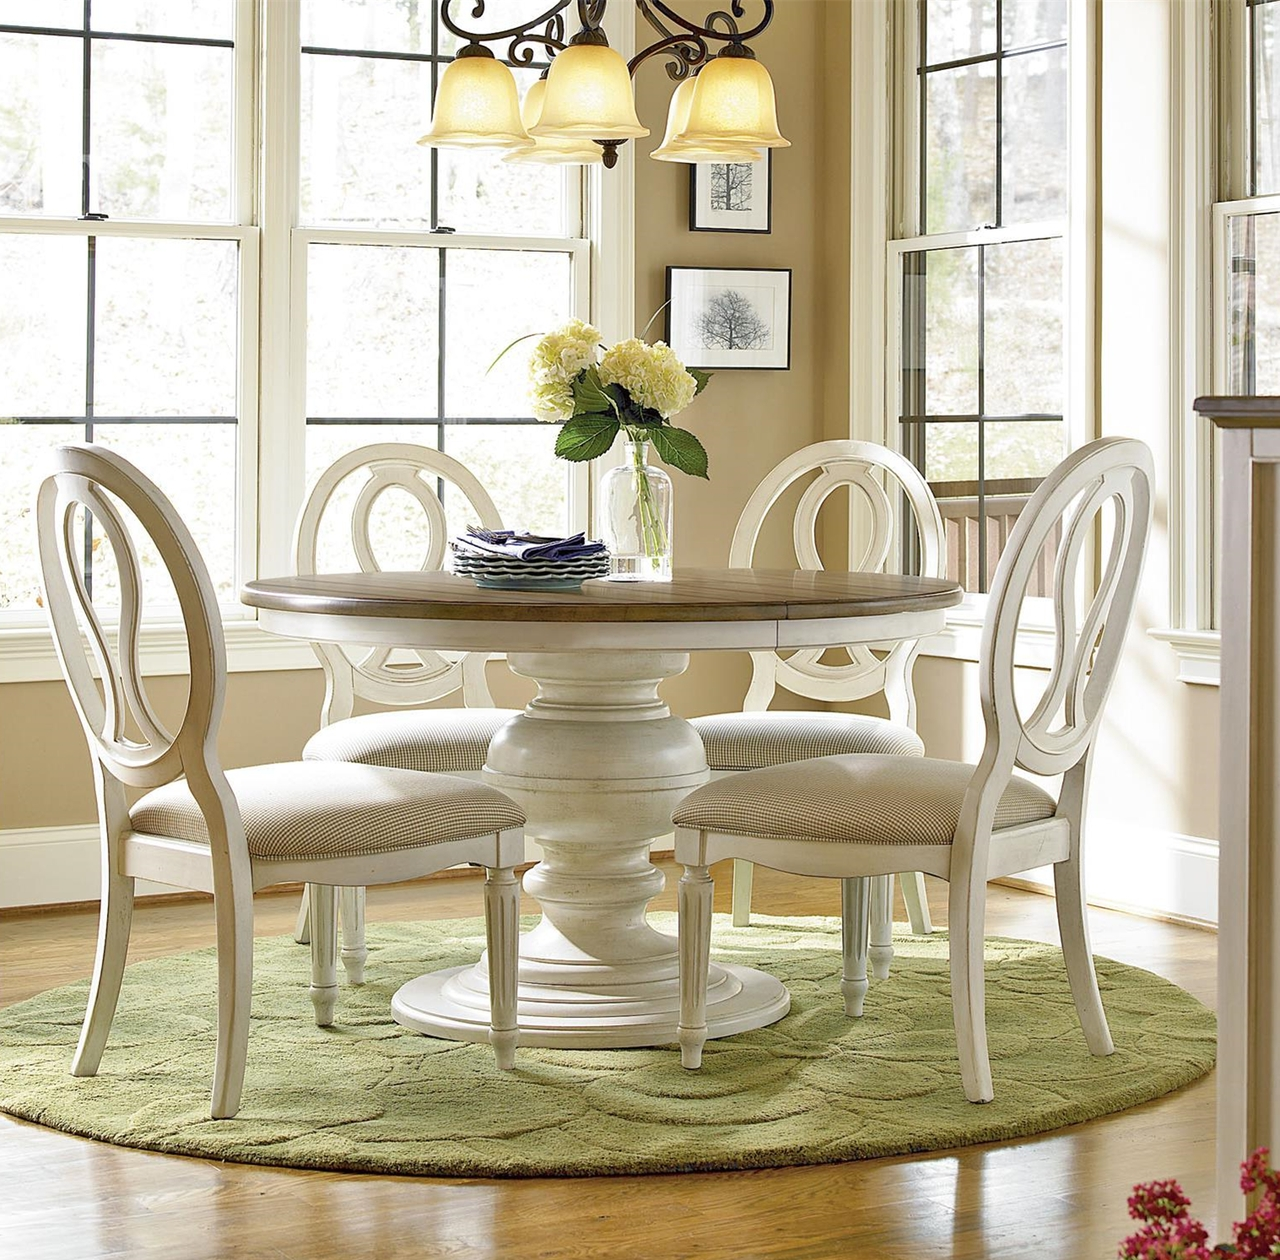 Favorite Extendable Round Dining Tables Sets Within Country Chic 5 Piece Round White Dining Table Set In  (View 10 of 25)